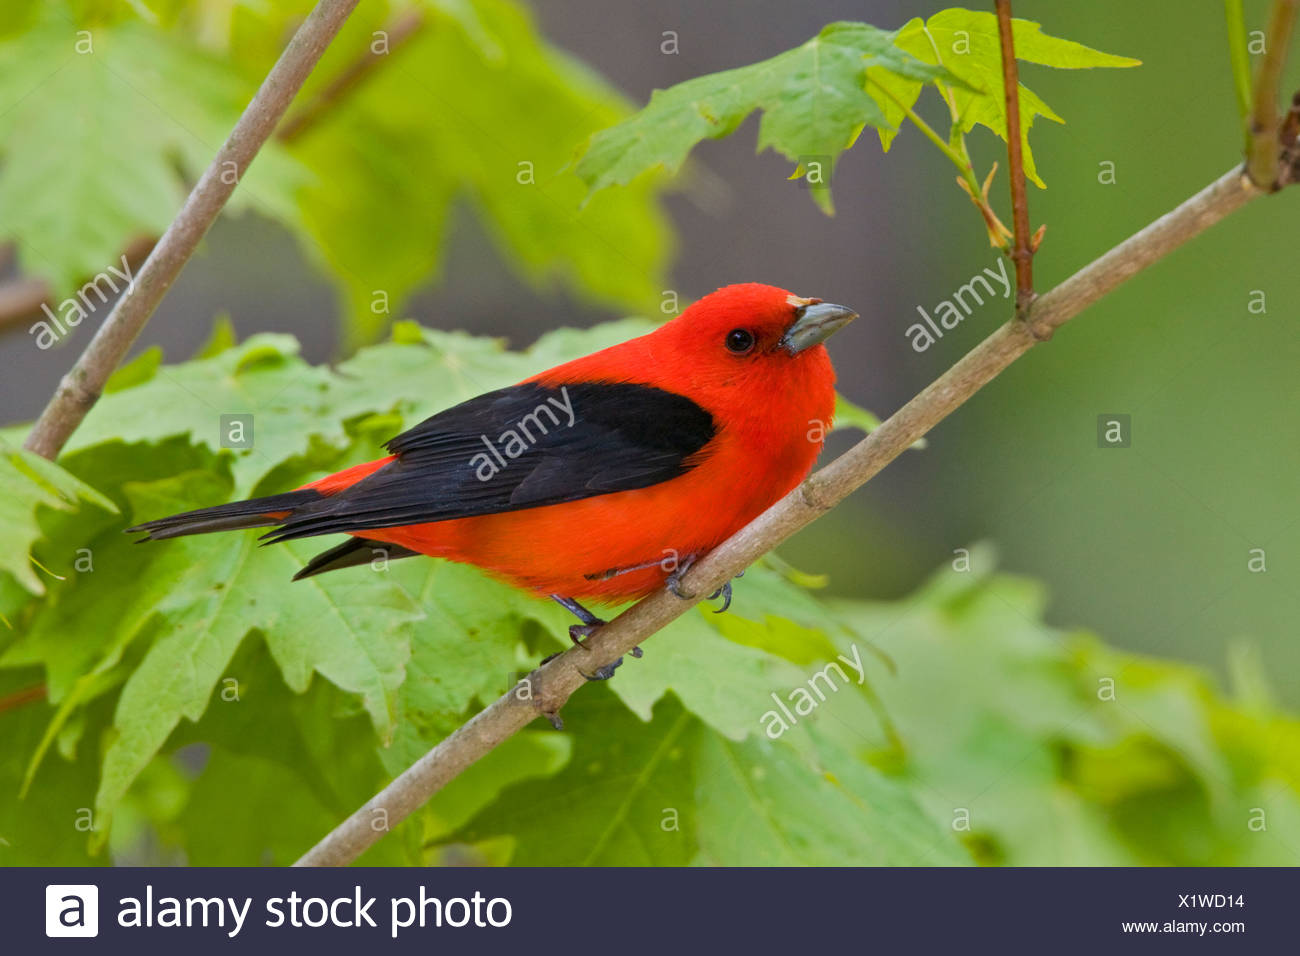 Scarlet Tanager (Piranga olivacea) perched on a branch near Long Point, Ontario, Canada - Stock Image